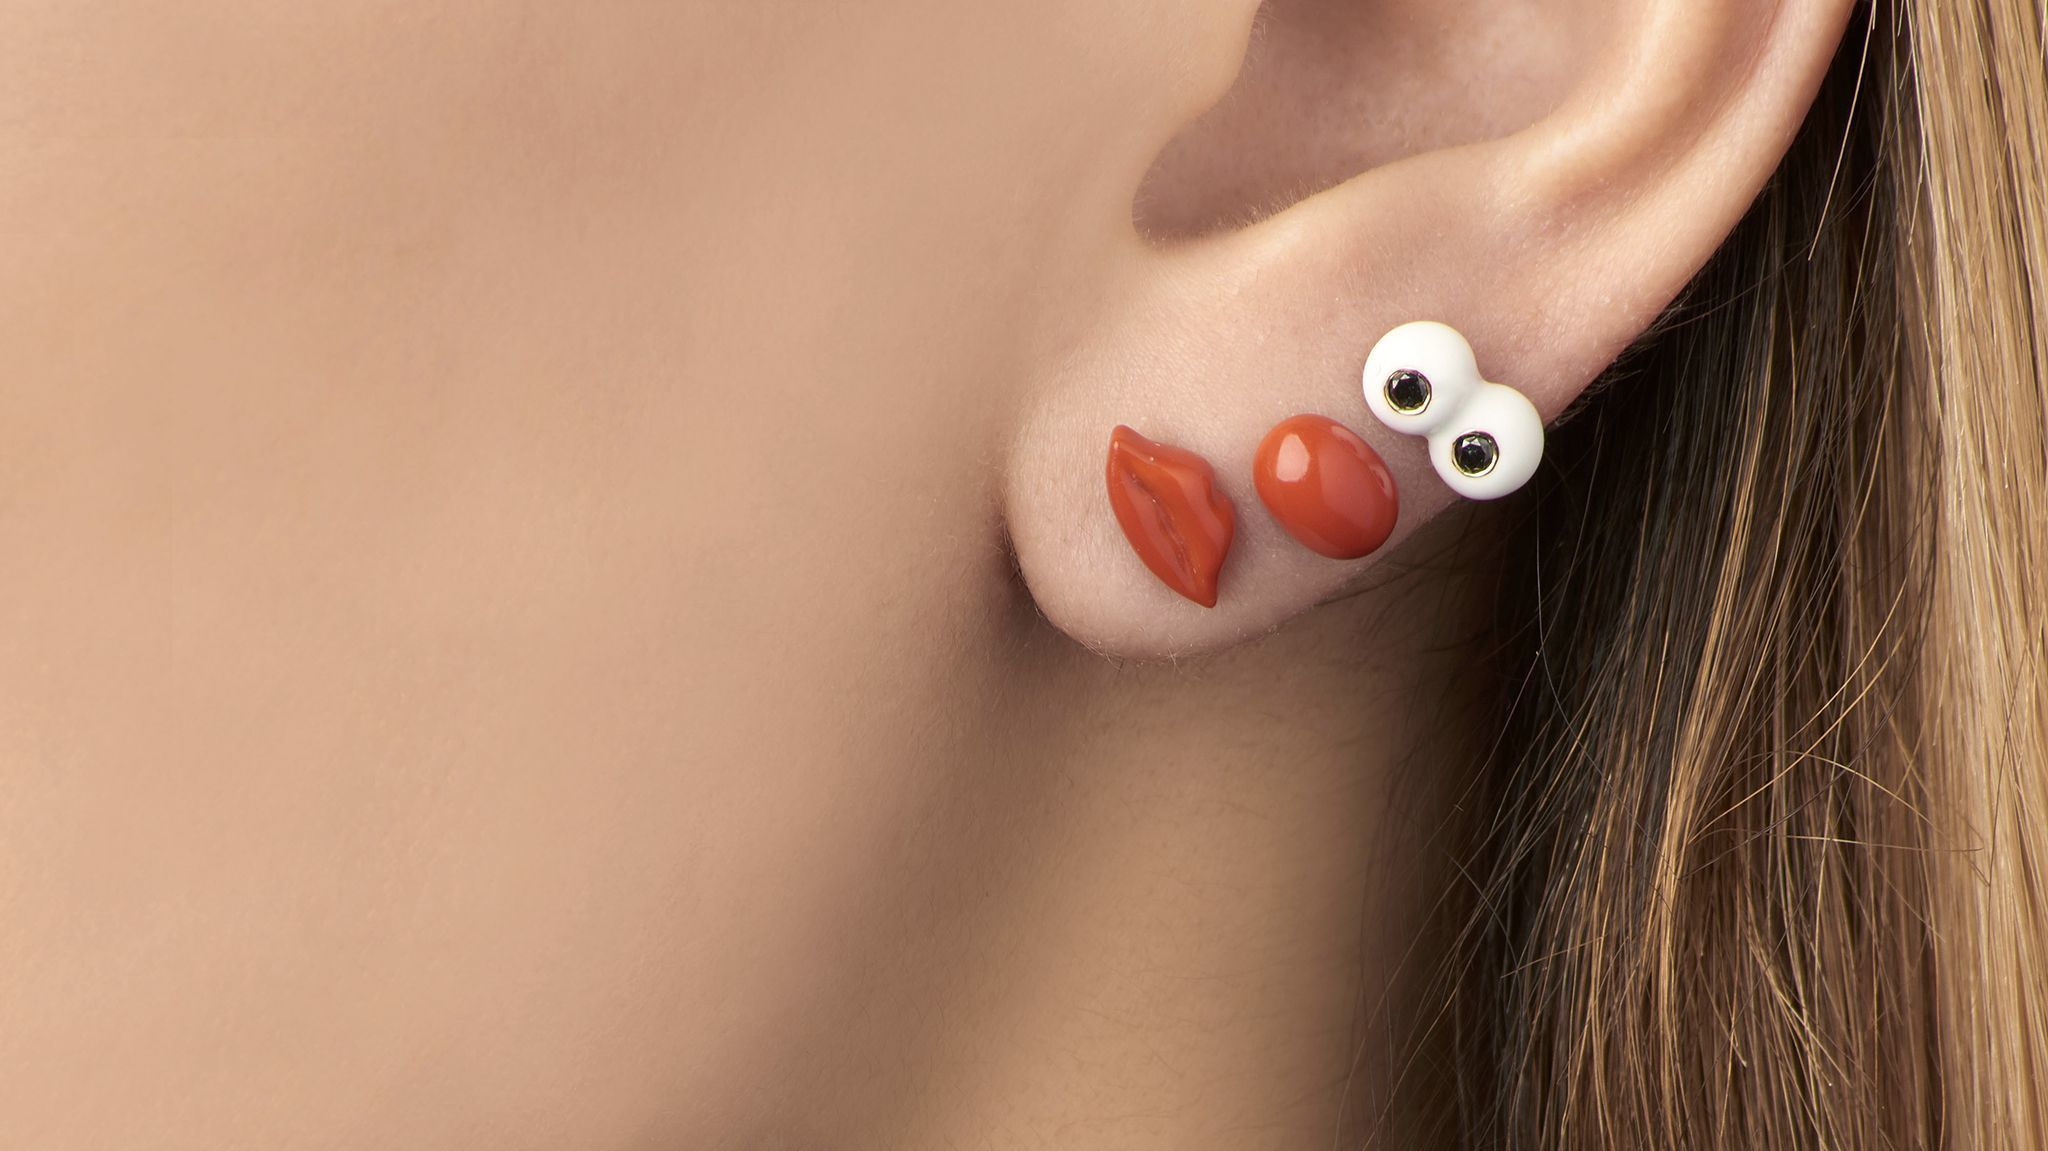 An earring ensemble by Alison Lou, designed for consumers with multiple piercings.